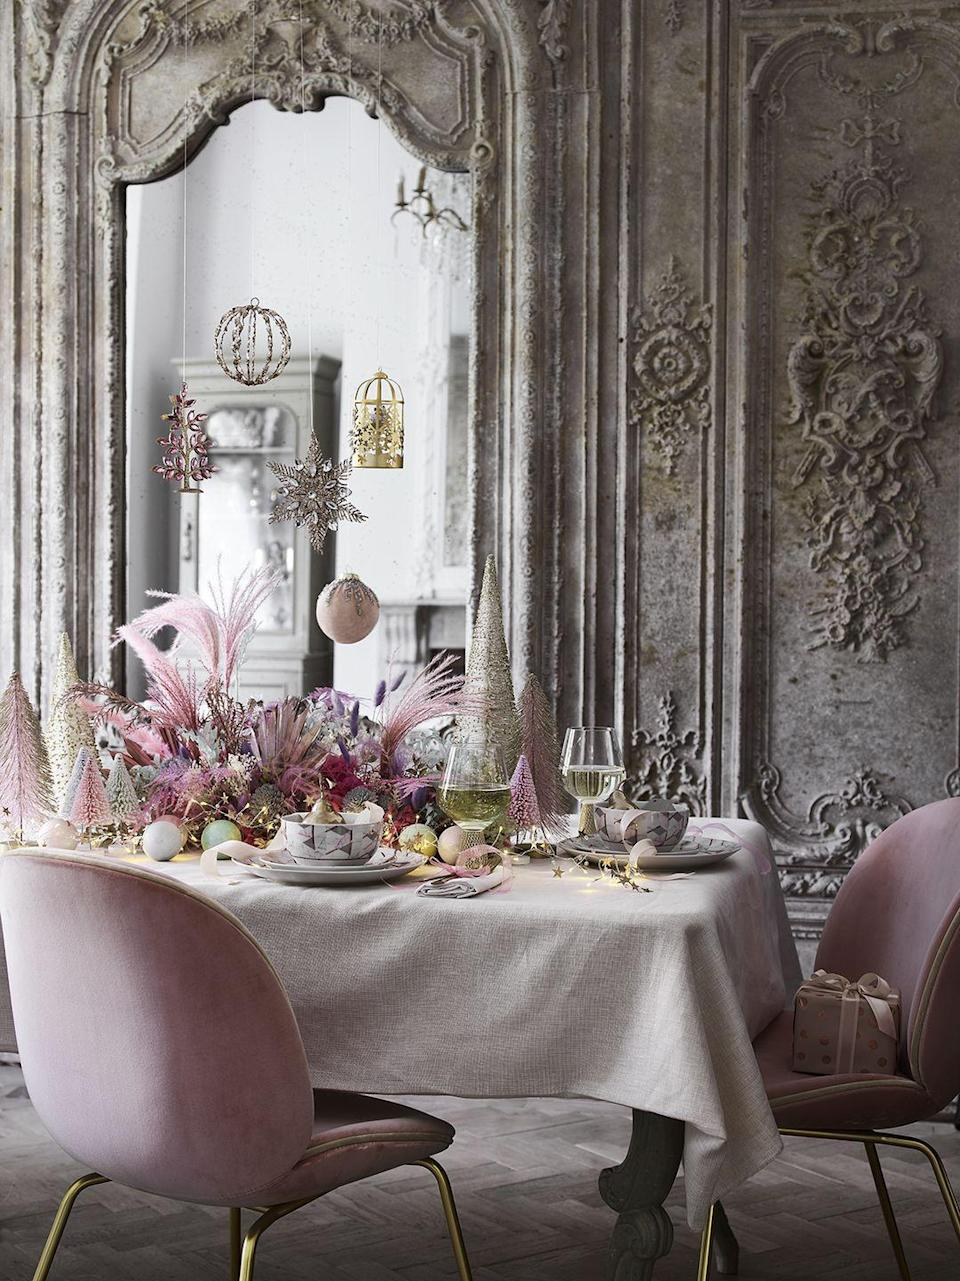 """<p>Combining icy blues with delicate pinks and champagne golds, the contemporary 'Fantastical' trend is all about creating an enchanting feel in every room. Some of the magical <a href=""""https://www.housebeautiful.com/uk/decorate/living-room/g32357518/living-room-accessories/"""" rel=""""nofollow noopener"""" target=""""_blank"""" data-ylk=""""slk:accessories"""" class=""""link rapid-noclick-resp"""">accessories</a> to get your hands on include soft blanket throws, angel baubles, ribbed glass lamps and pink gold glitter trees. </p>"""